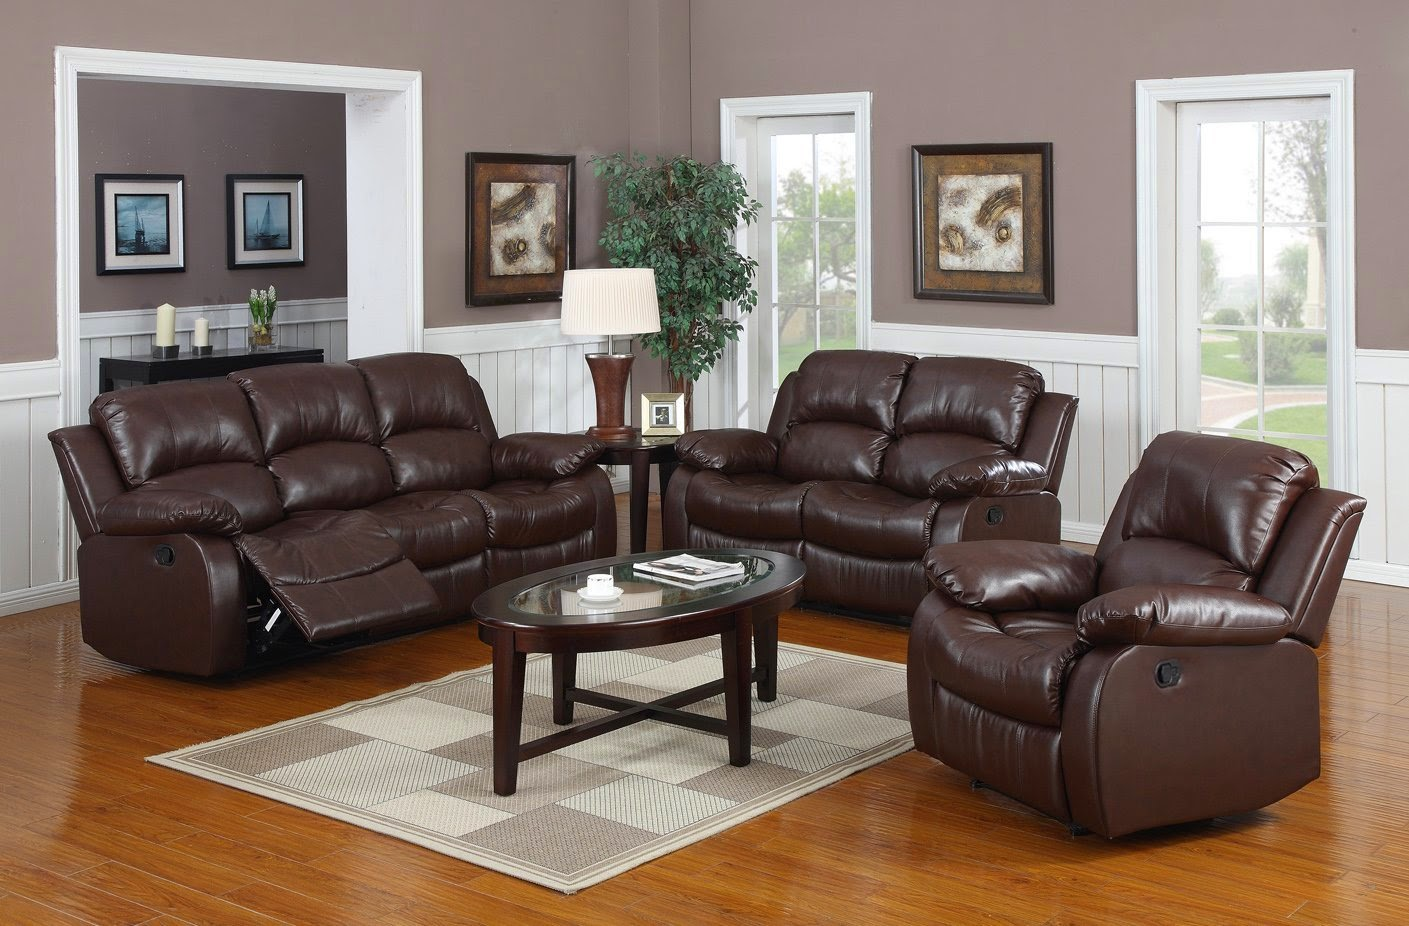 Double Reclining Sofa With Fold Down Table Black Leather Chaise The Best Reviews: Recliner ...